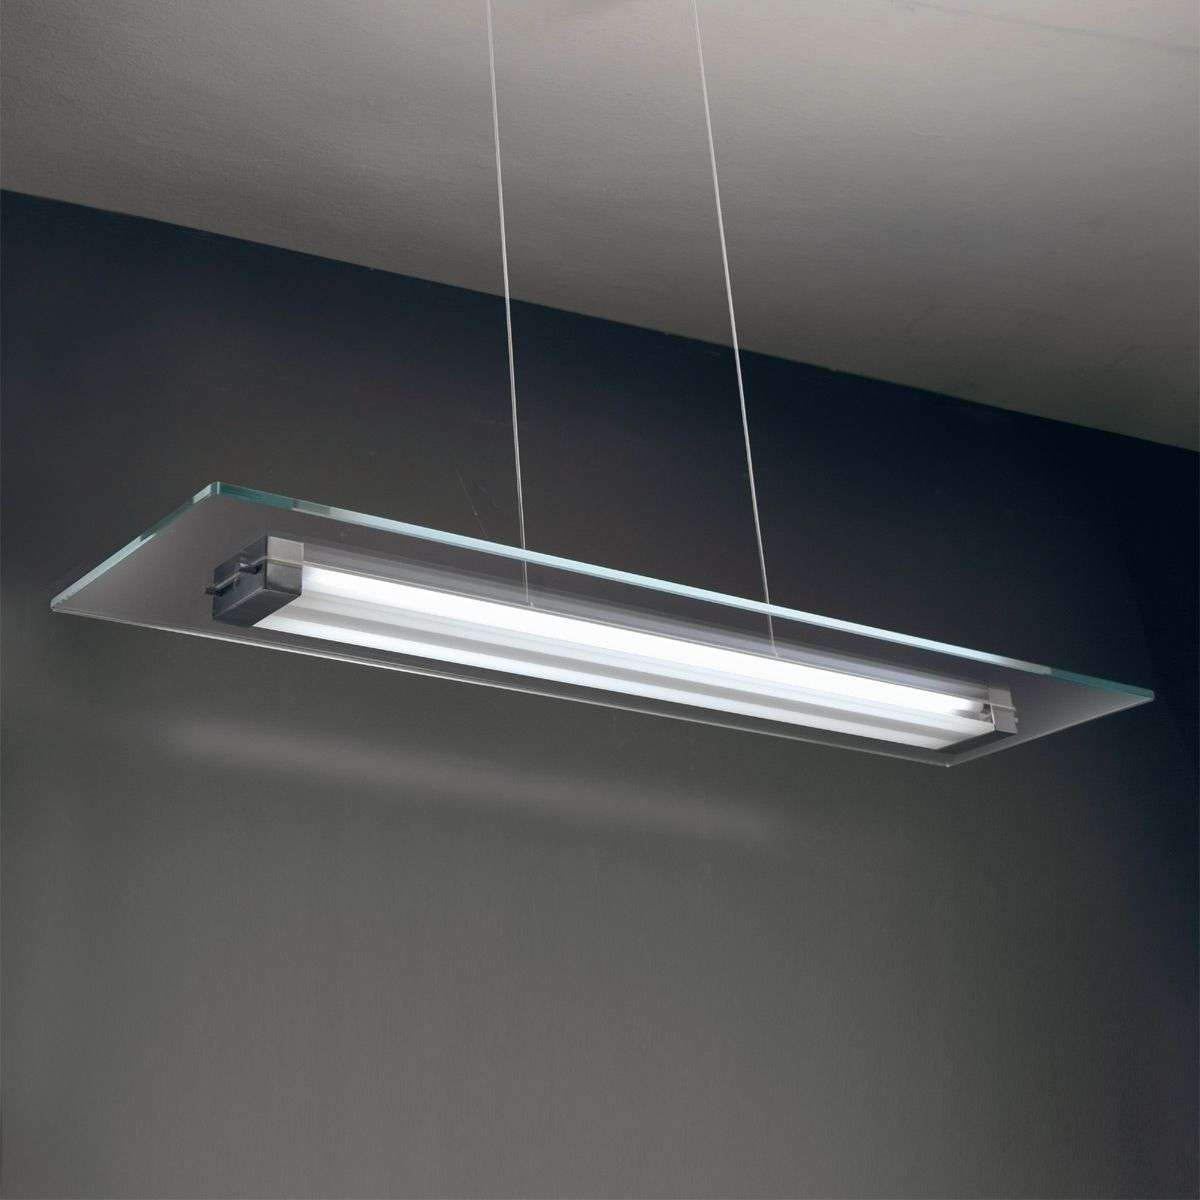 Exclusieve hanglamp Fly-6059075-31